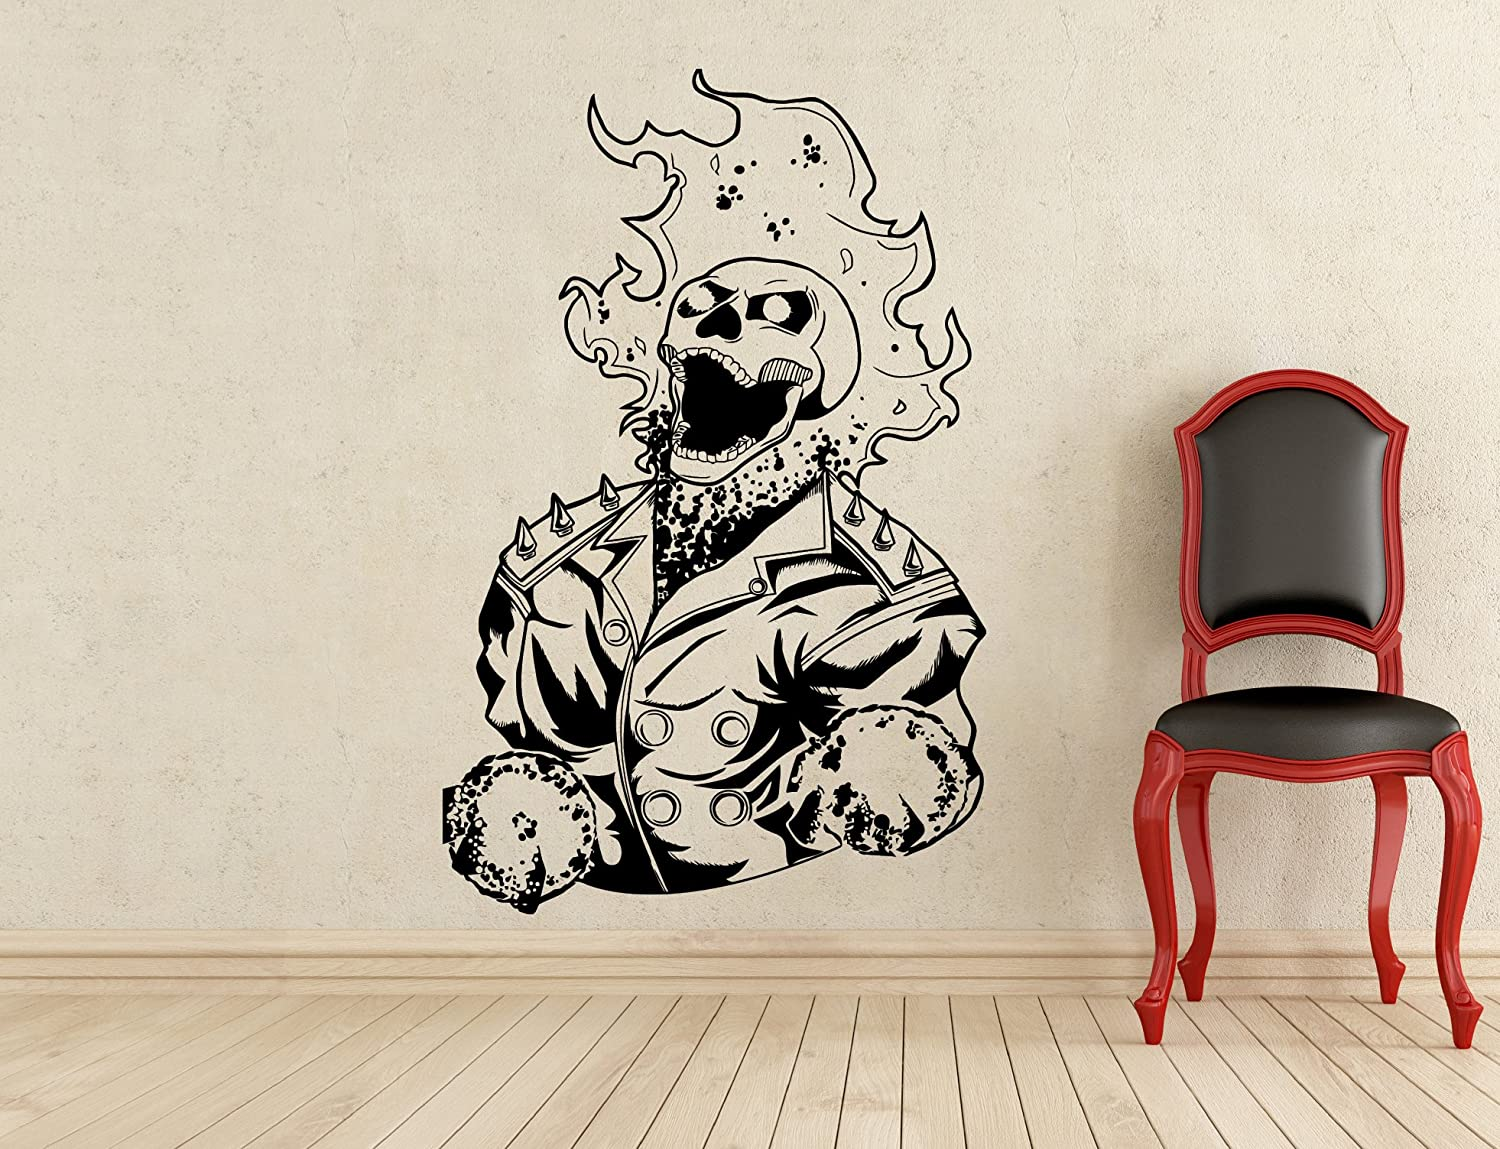 Ghost rider wall decal superhero vinyl sticker wall decor removable waterproof decal 149z amazon com